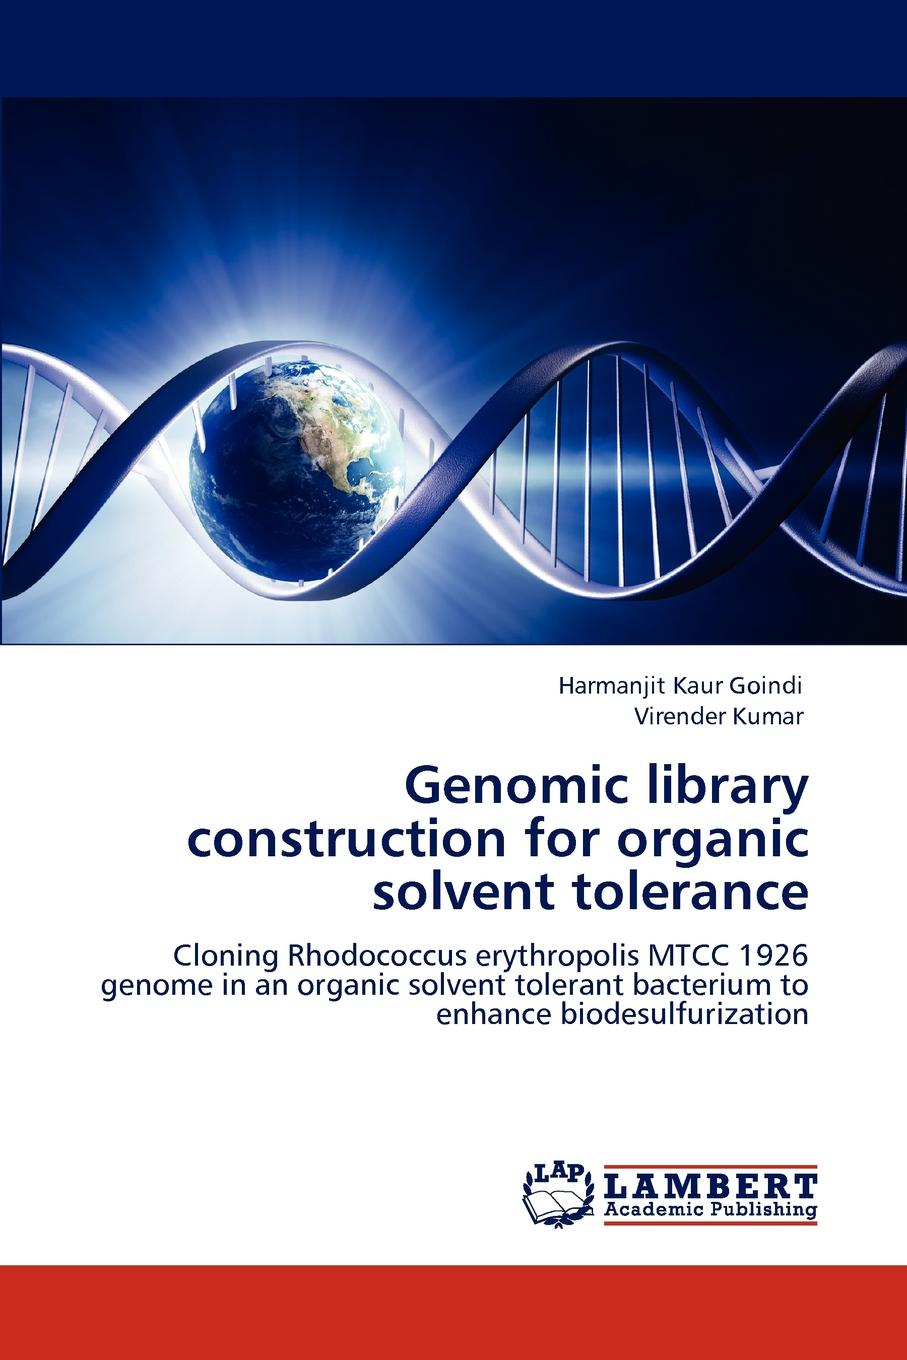 Harmanjit Kaur Goindi, Virender Kumar Genomic Library Construction for Organic Solvent Tolerance malcolm kemp extreme events robust portfolio construction in the presence of fat tails isbn 9780470976791